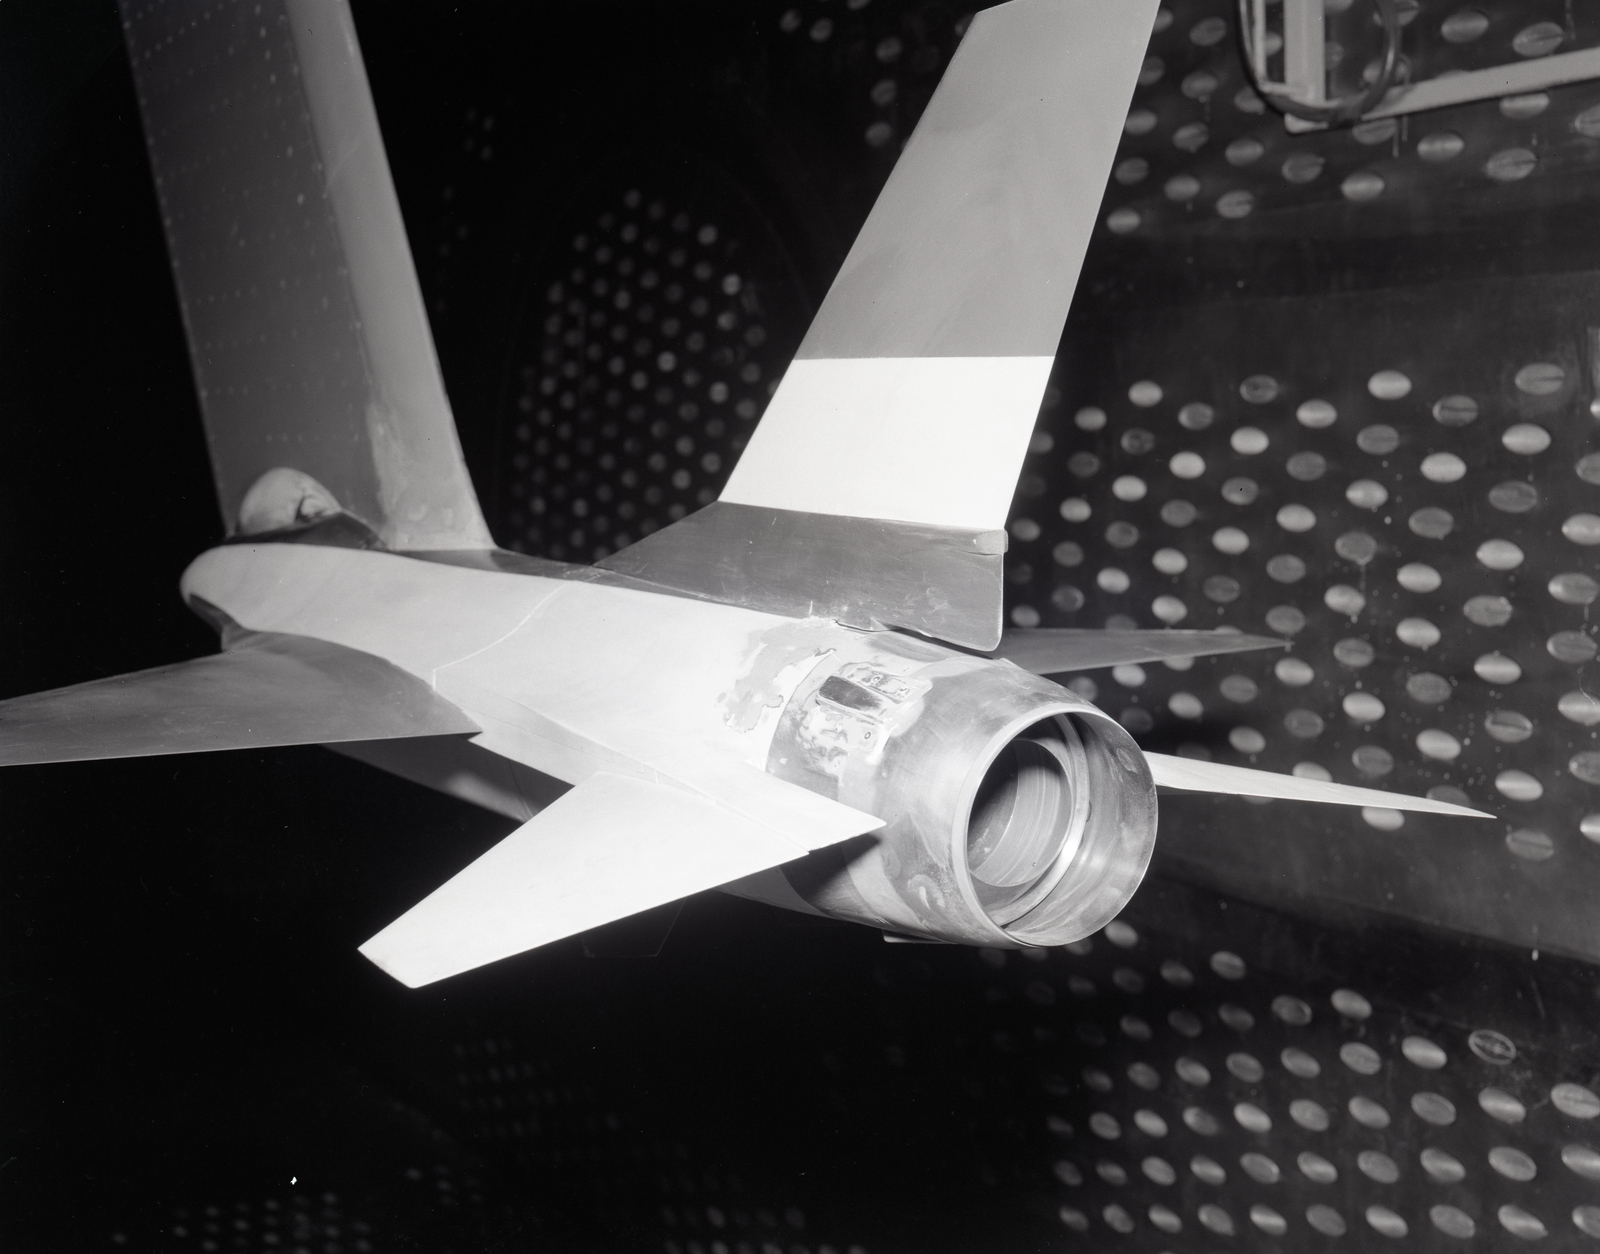 GENERAL DYNAMICS CONVAIR FIXED SHROUD NOZZLE MODEL IN THE 8X6 FOOT WIND TUNNEL